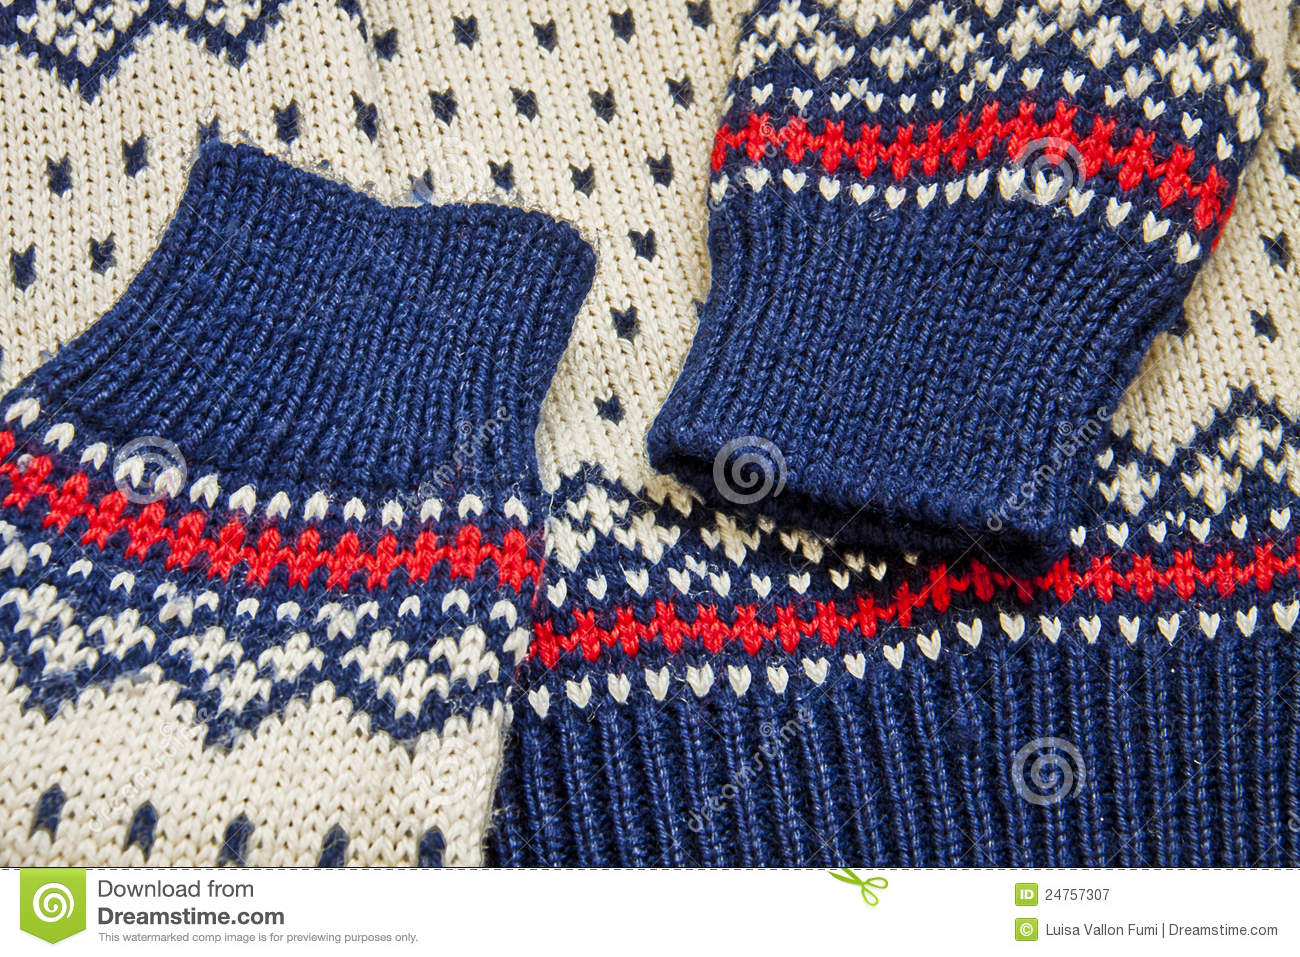 Nordic Knitting Patterns Free : Nordic Knit Sweater Close Up Royalty Free Stock Photography - Image: 24757307